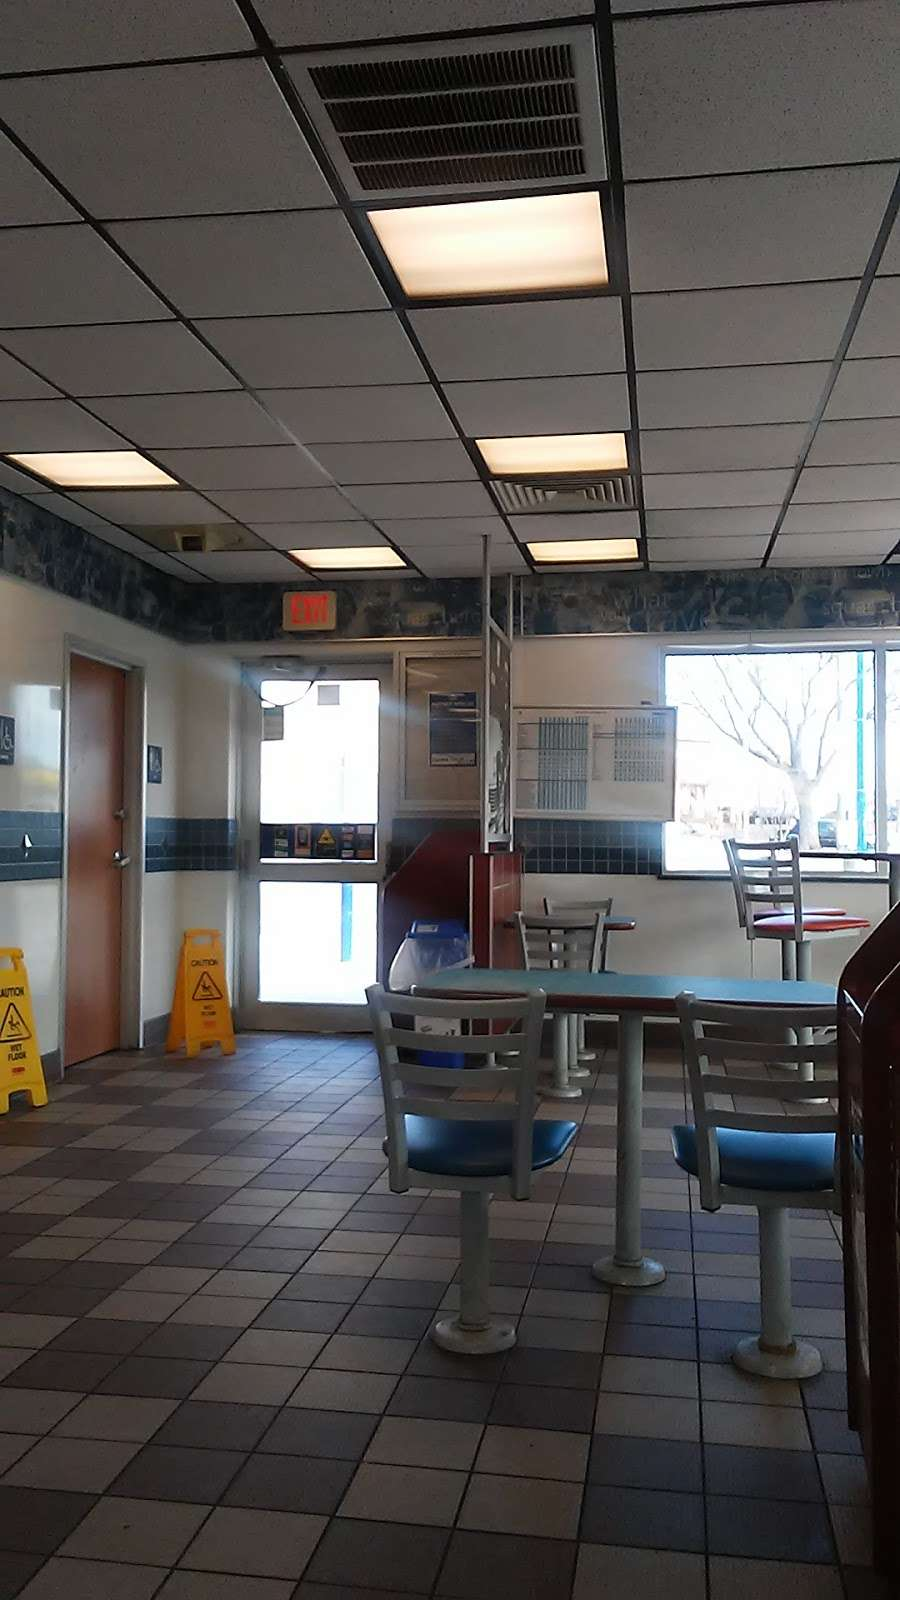 White Castle - restaurant  | Photo 10 of 10 | Address: 2701 Boston Rd, Bronx, NY 10467, USA | Phone: (718) 231-4978